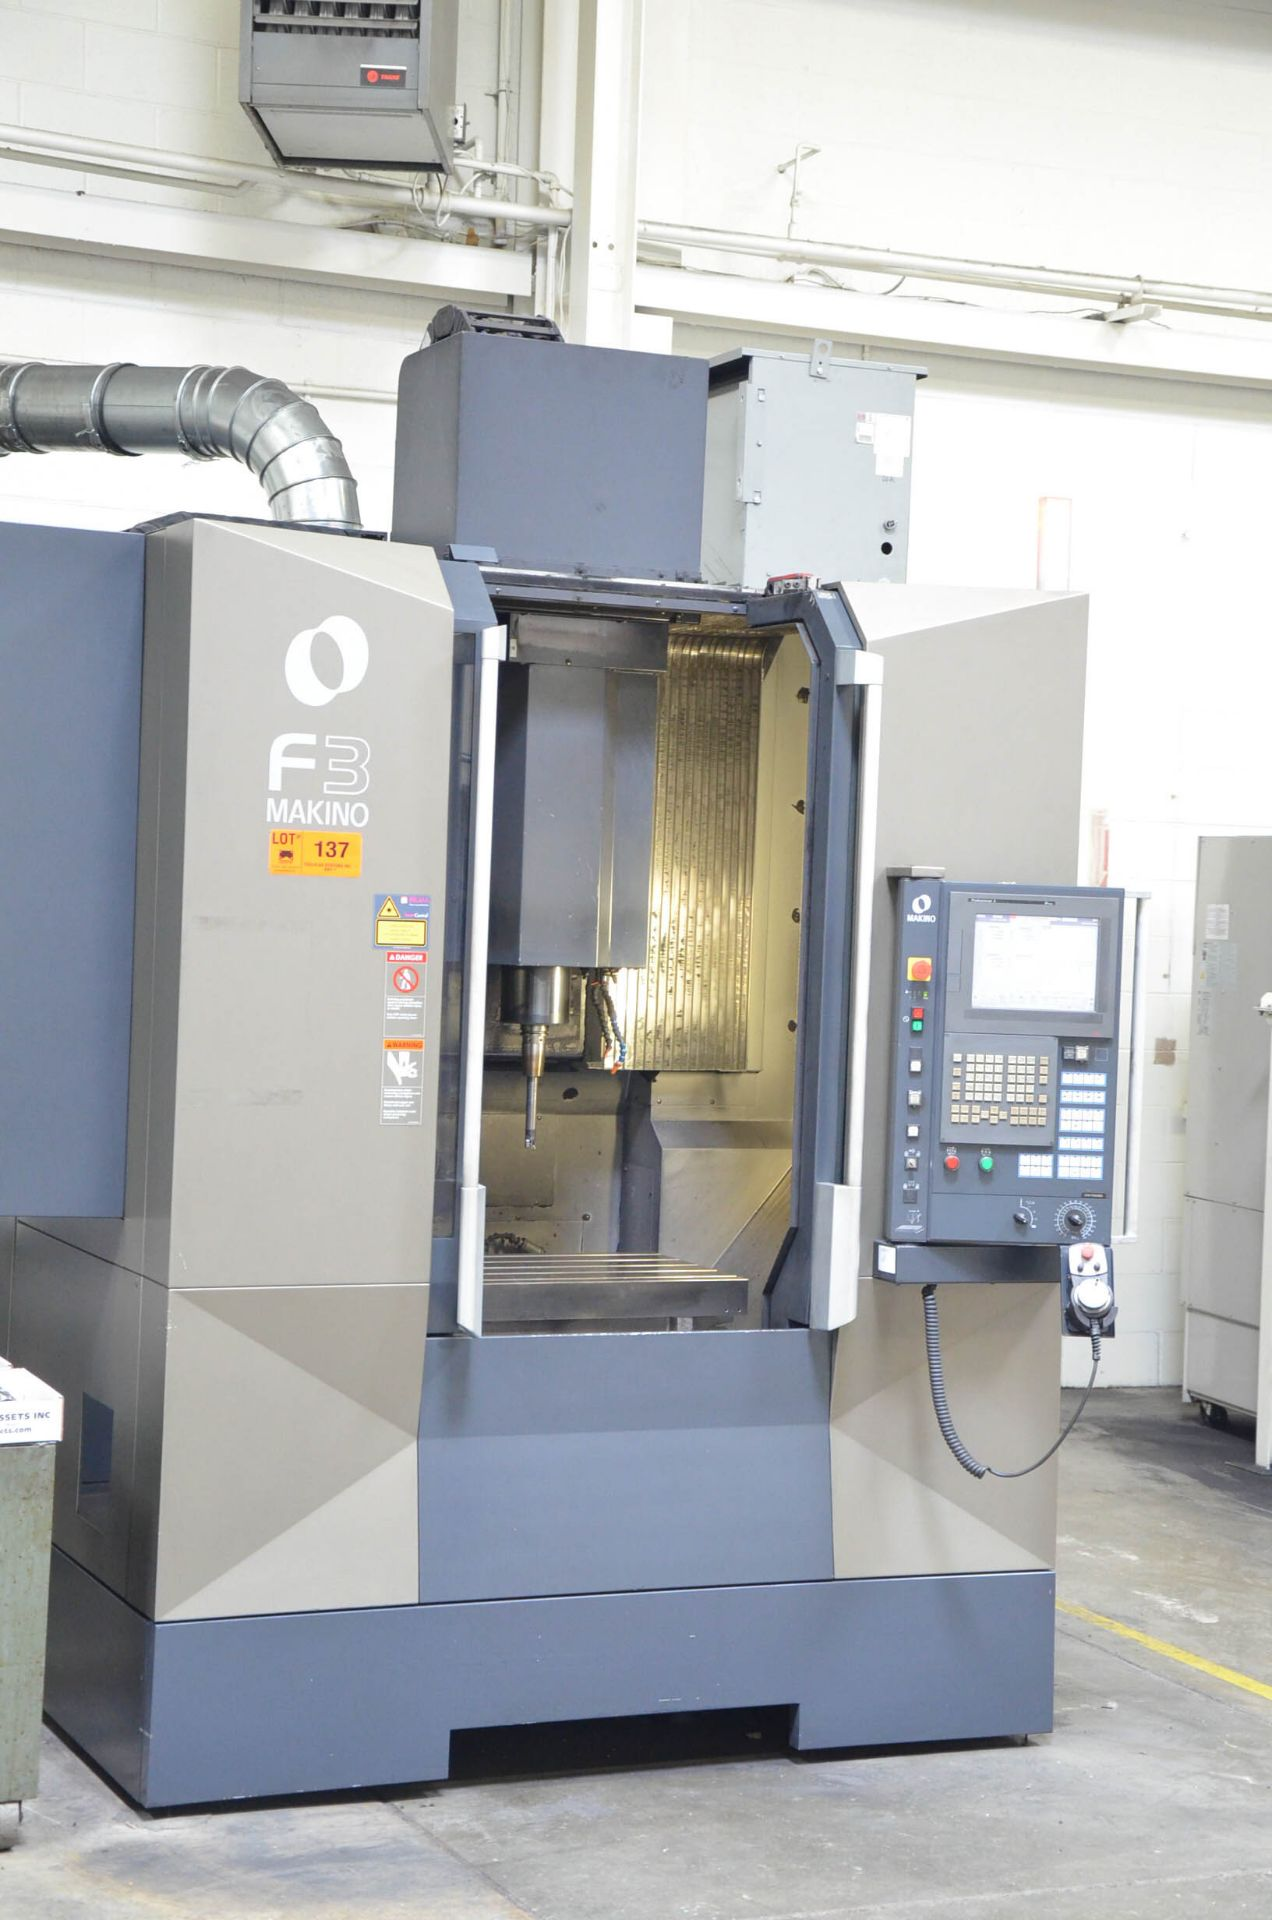 MAKINO (2012) F3 CNC VERTICAL MACHINING CENTER WITH MAKINO PROFESSIONAL 5 TOUCHSCREEN CNC CONTROL, - Image 2 of 9